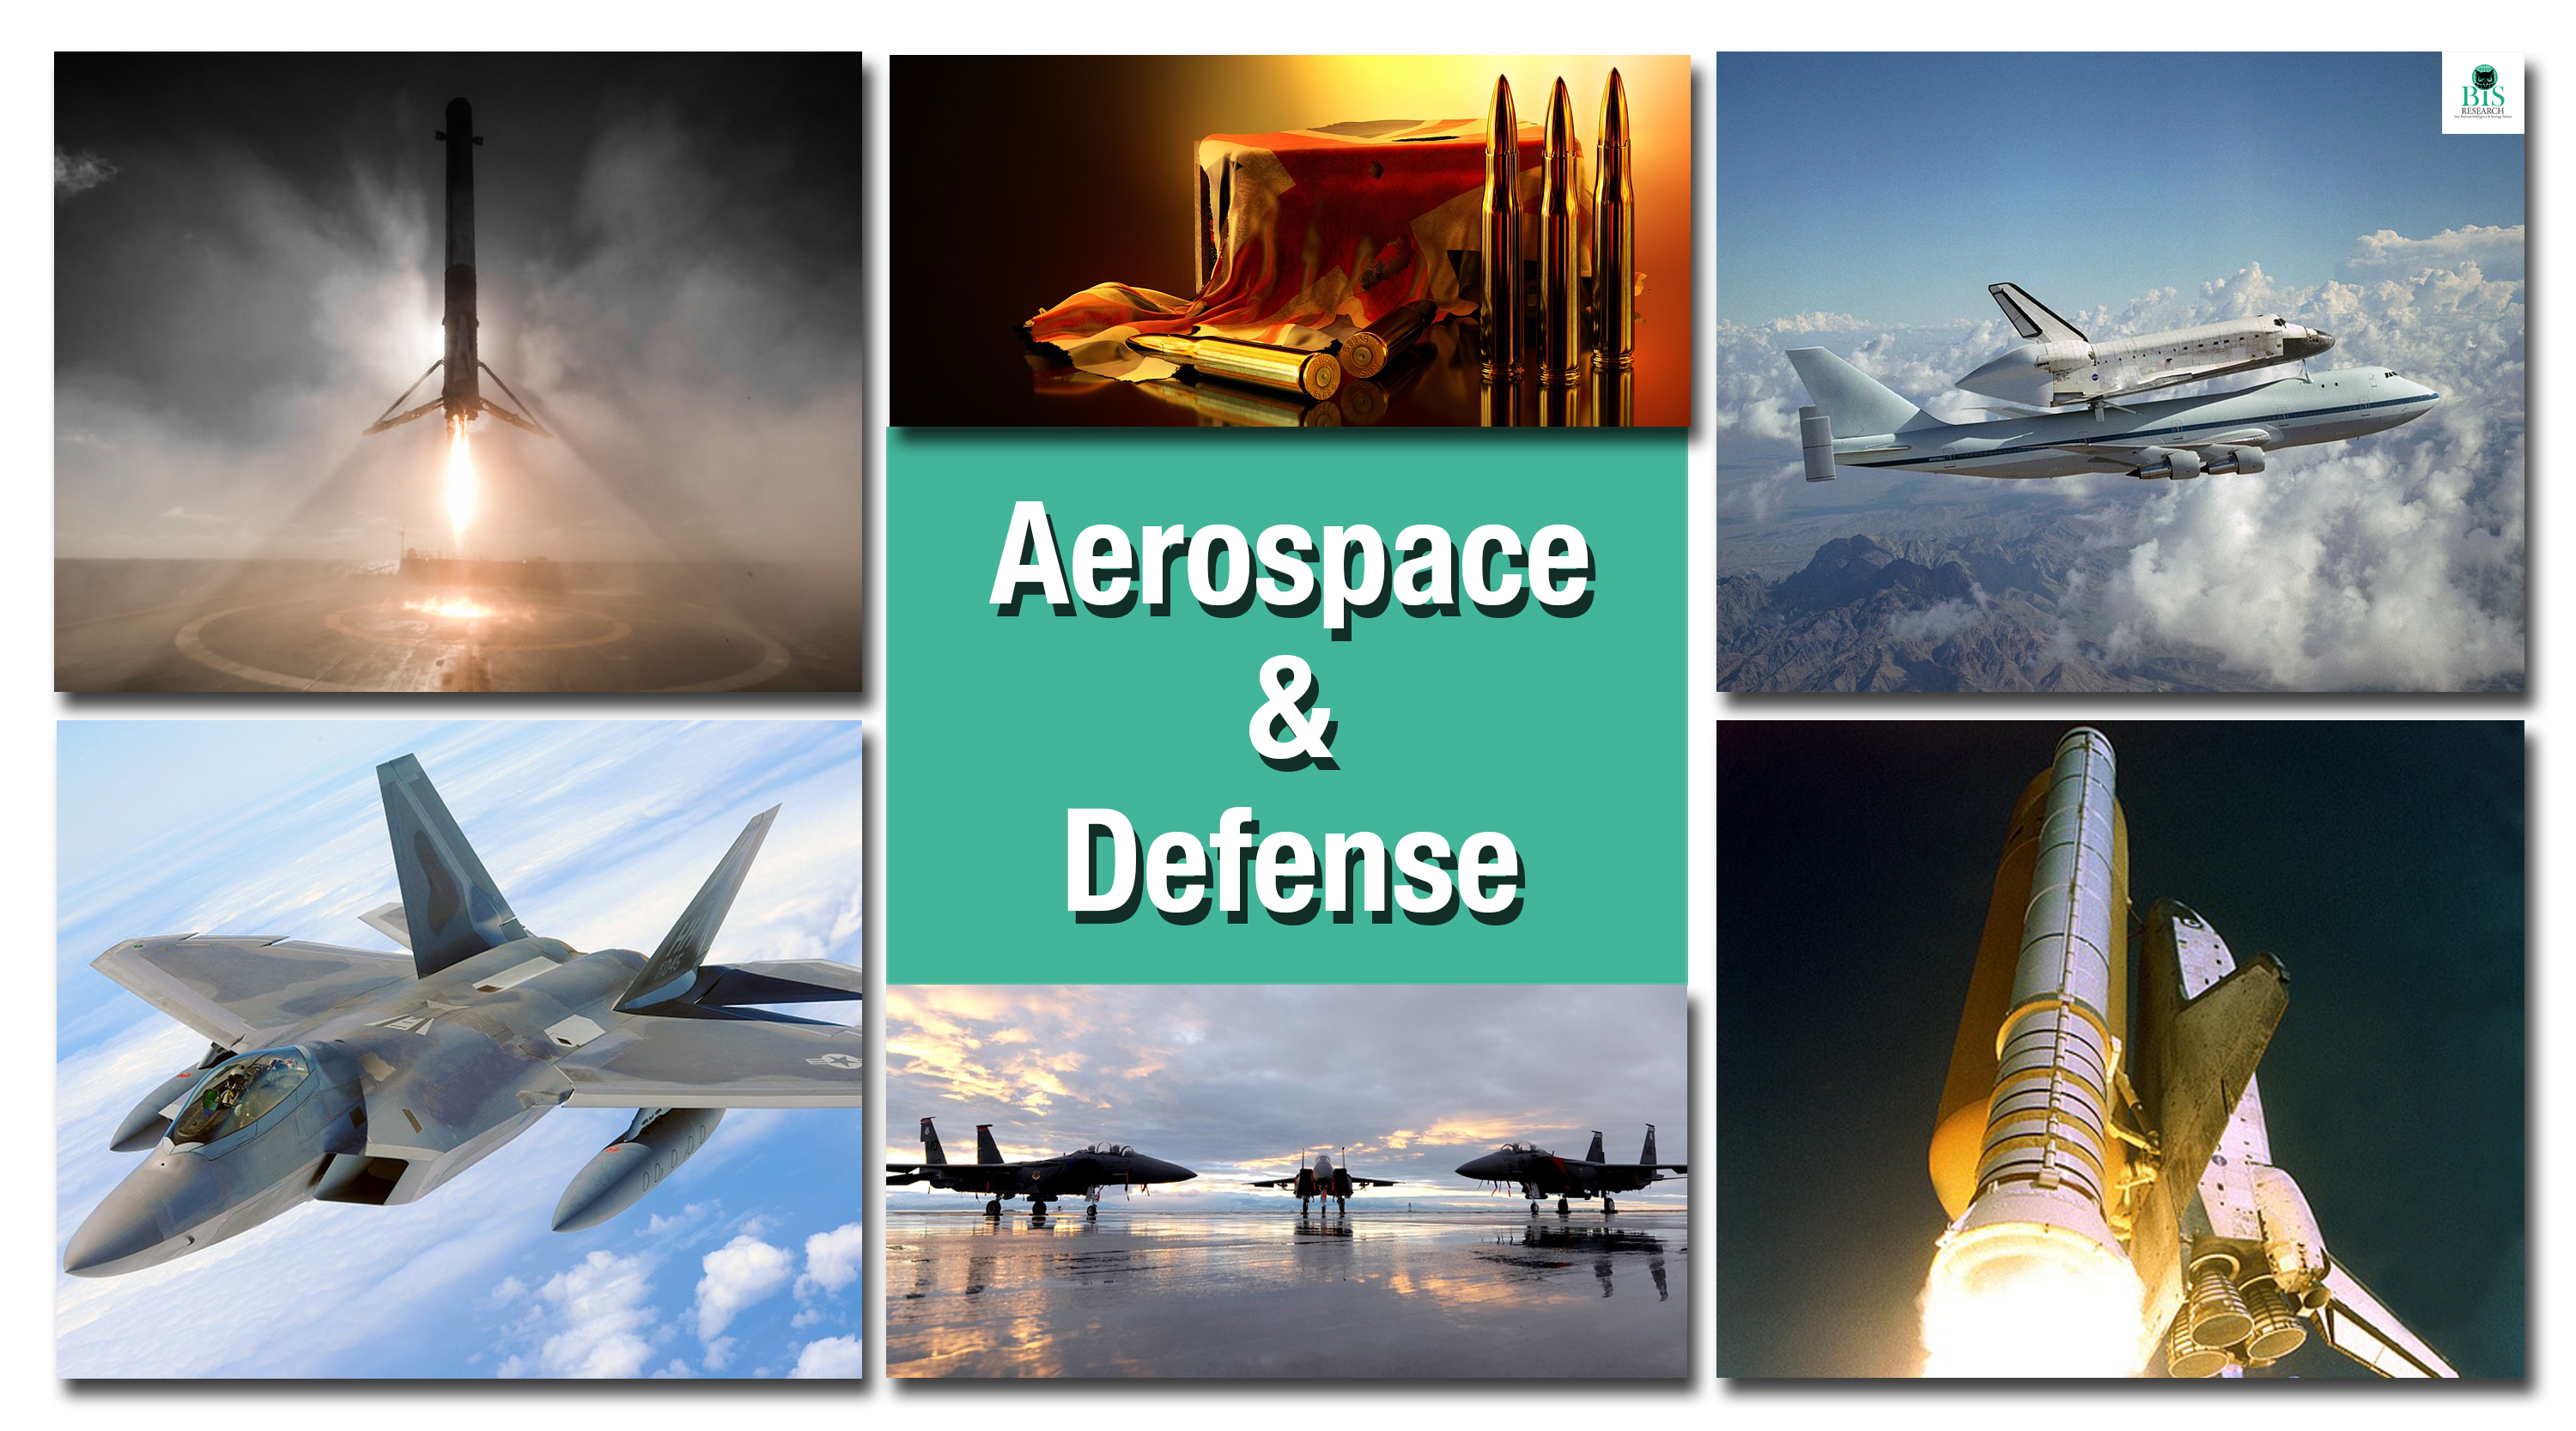 Aerospace & Defense Market